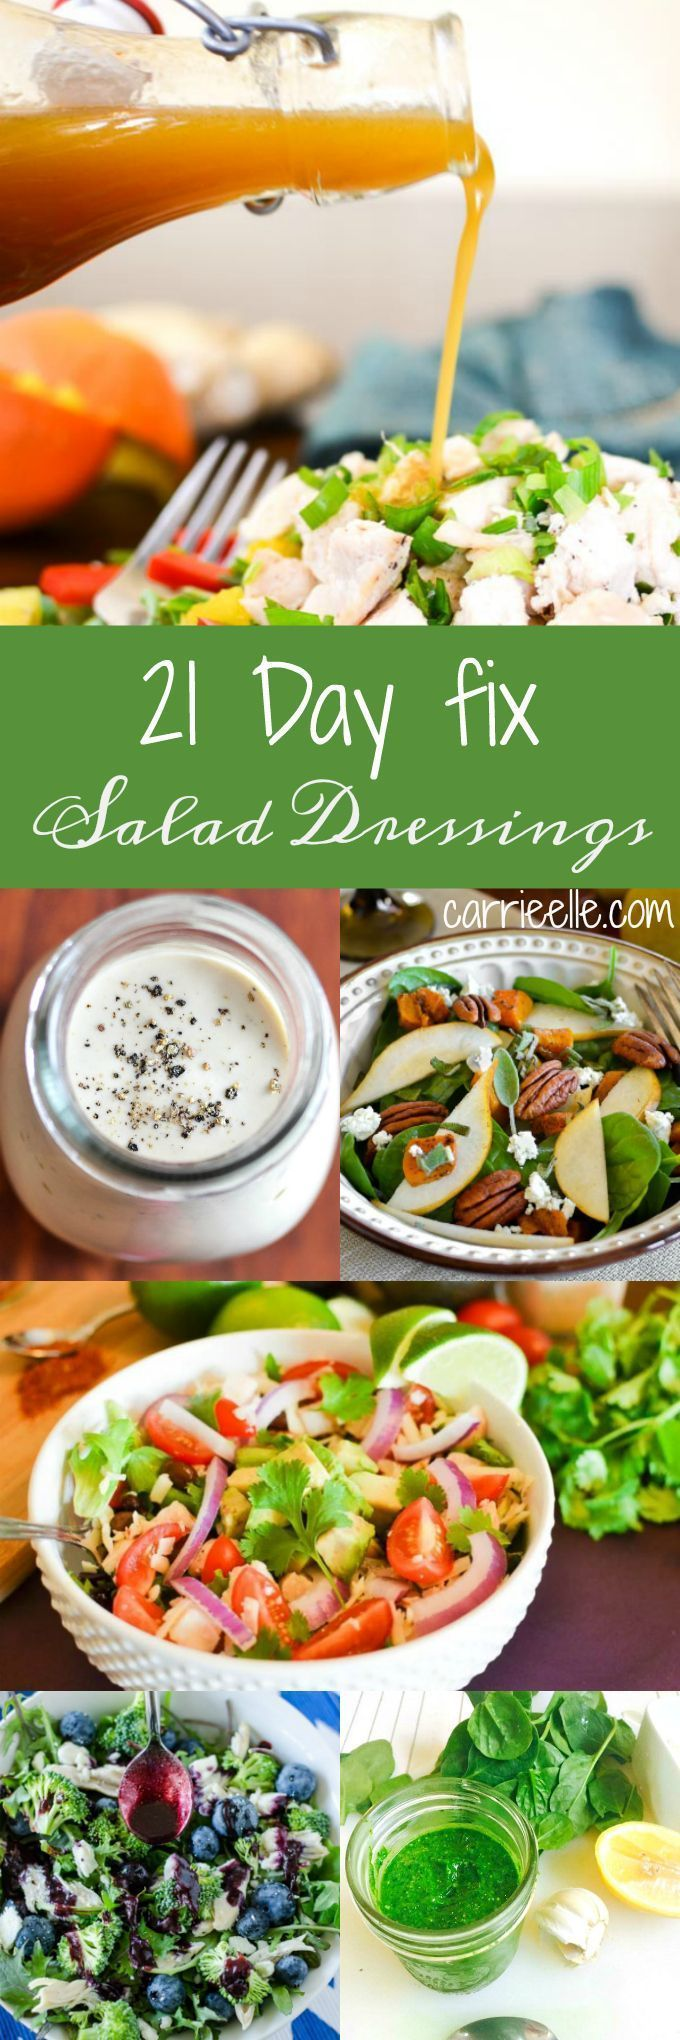 21 Day Fix Salad Dressings (container counts included - these are all SO good!)